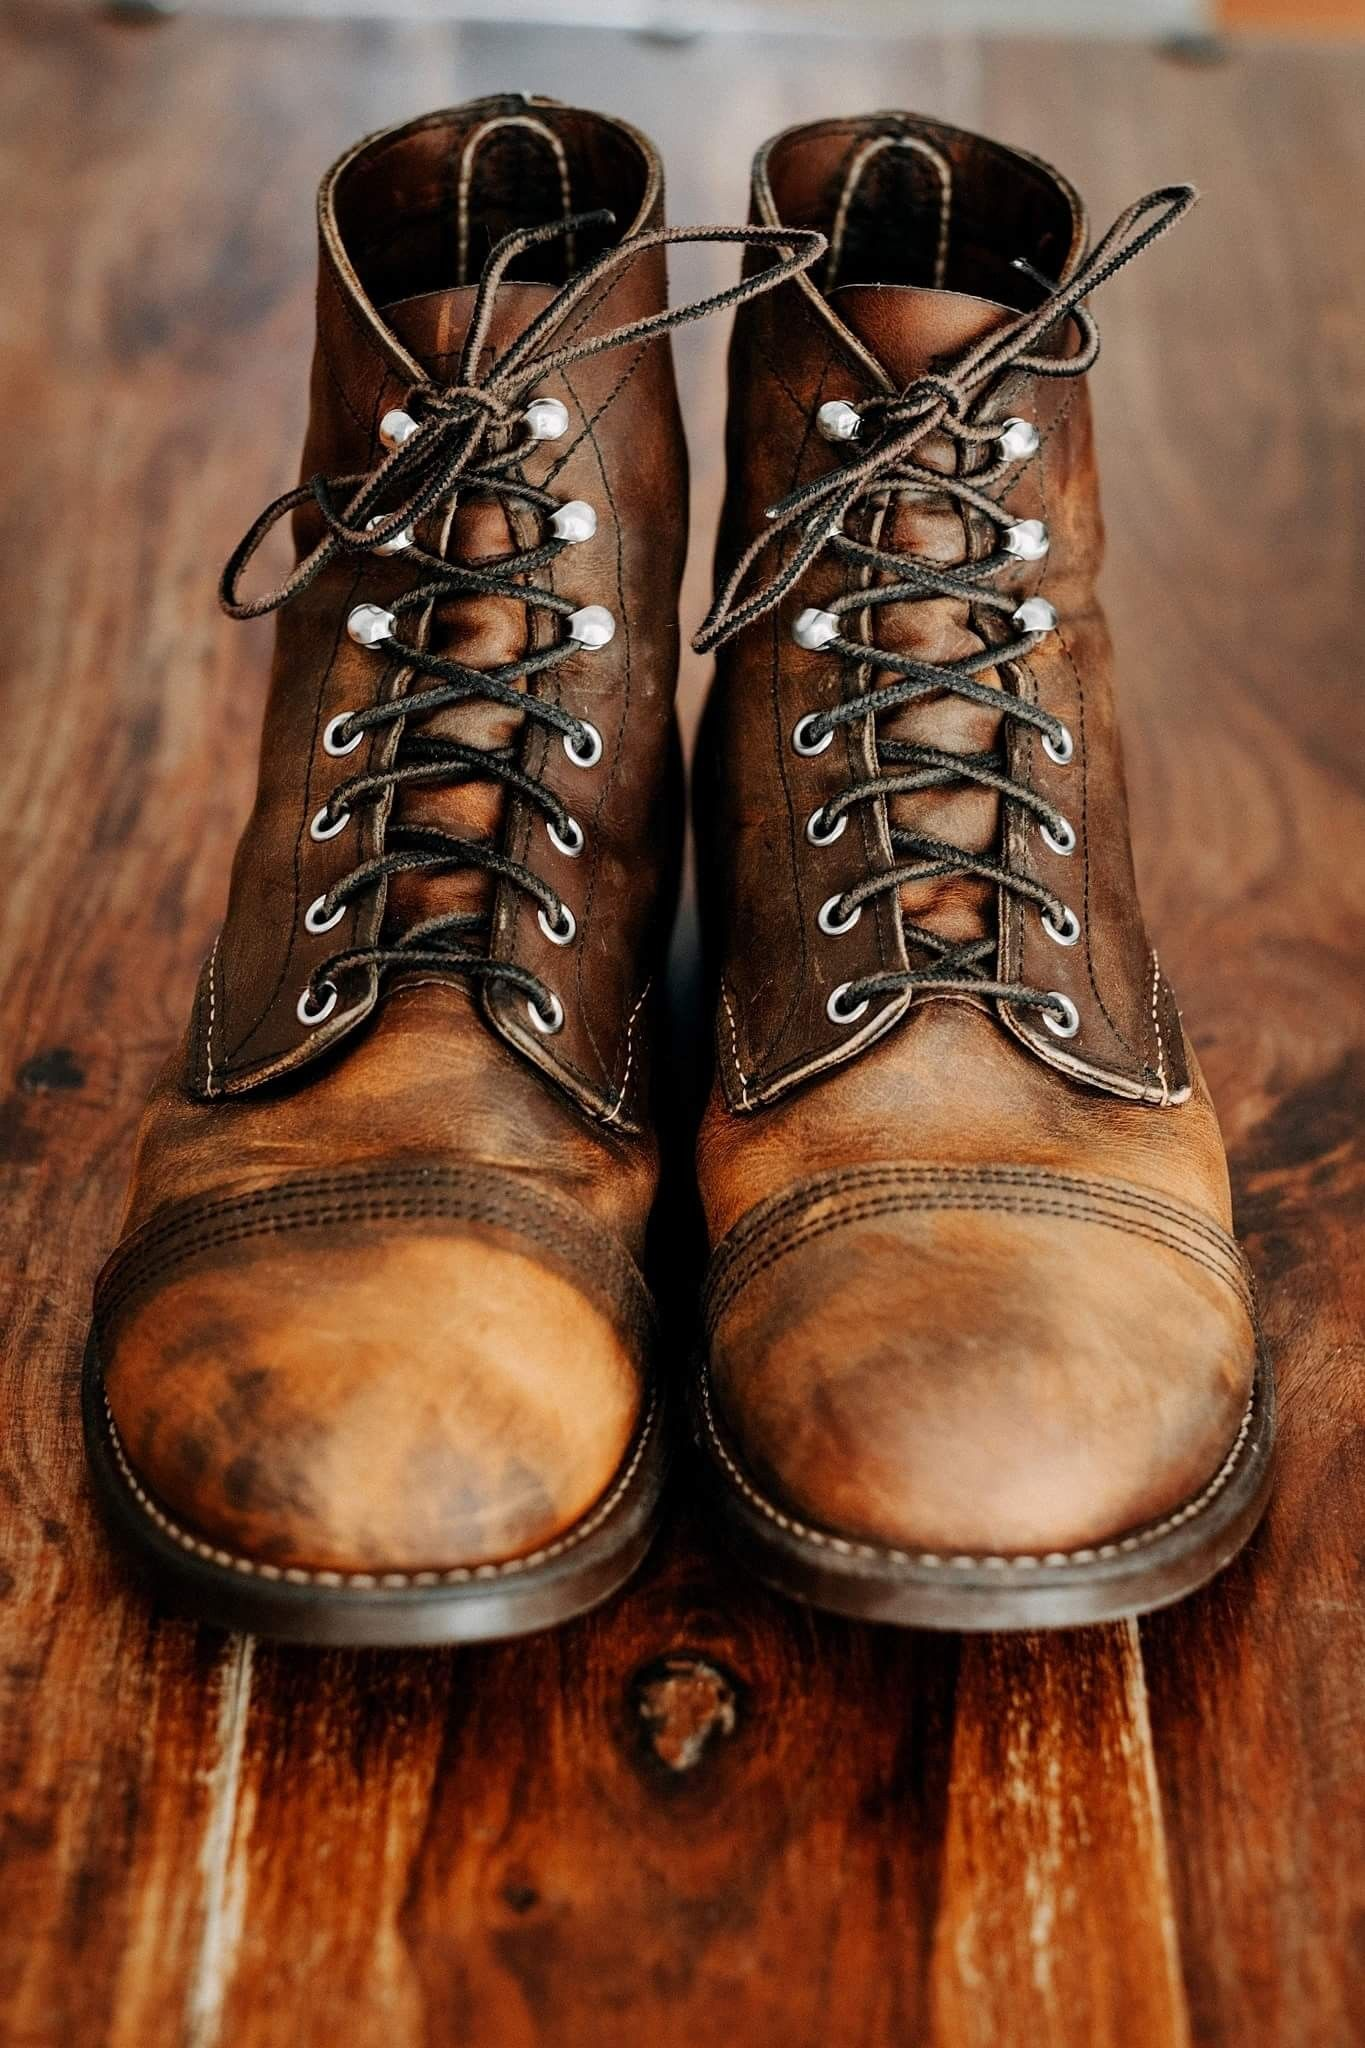 f83ab09e200 Iron Ranger 8085 boots. 6 months of wear. | What I'm living for in ...